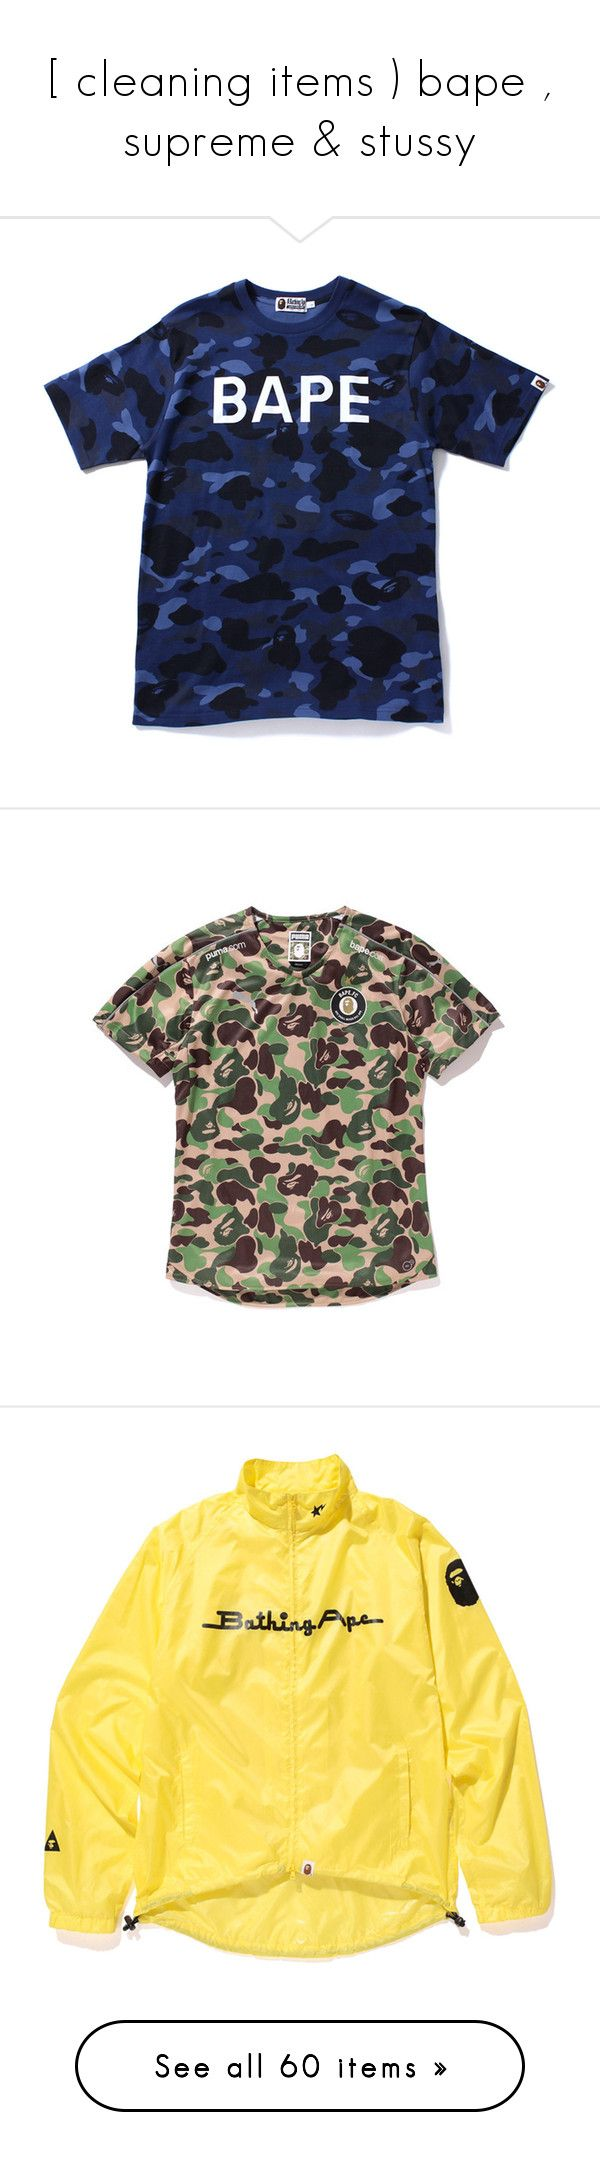 """""""[ cleaning items ) bape , supreme & stussy"""" by o-ndulado ❤ liked on Polyvore featuring tops, t-shirts, shirts, camouflage t shirts, camo tee-shirt, t shirt, camouflage tee-shirt, blue shirt, activewear and polyester shirt"""